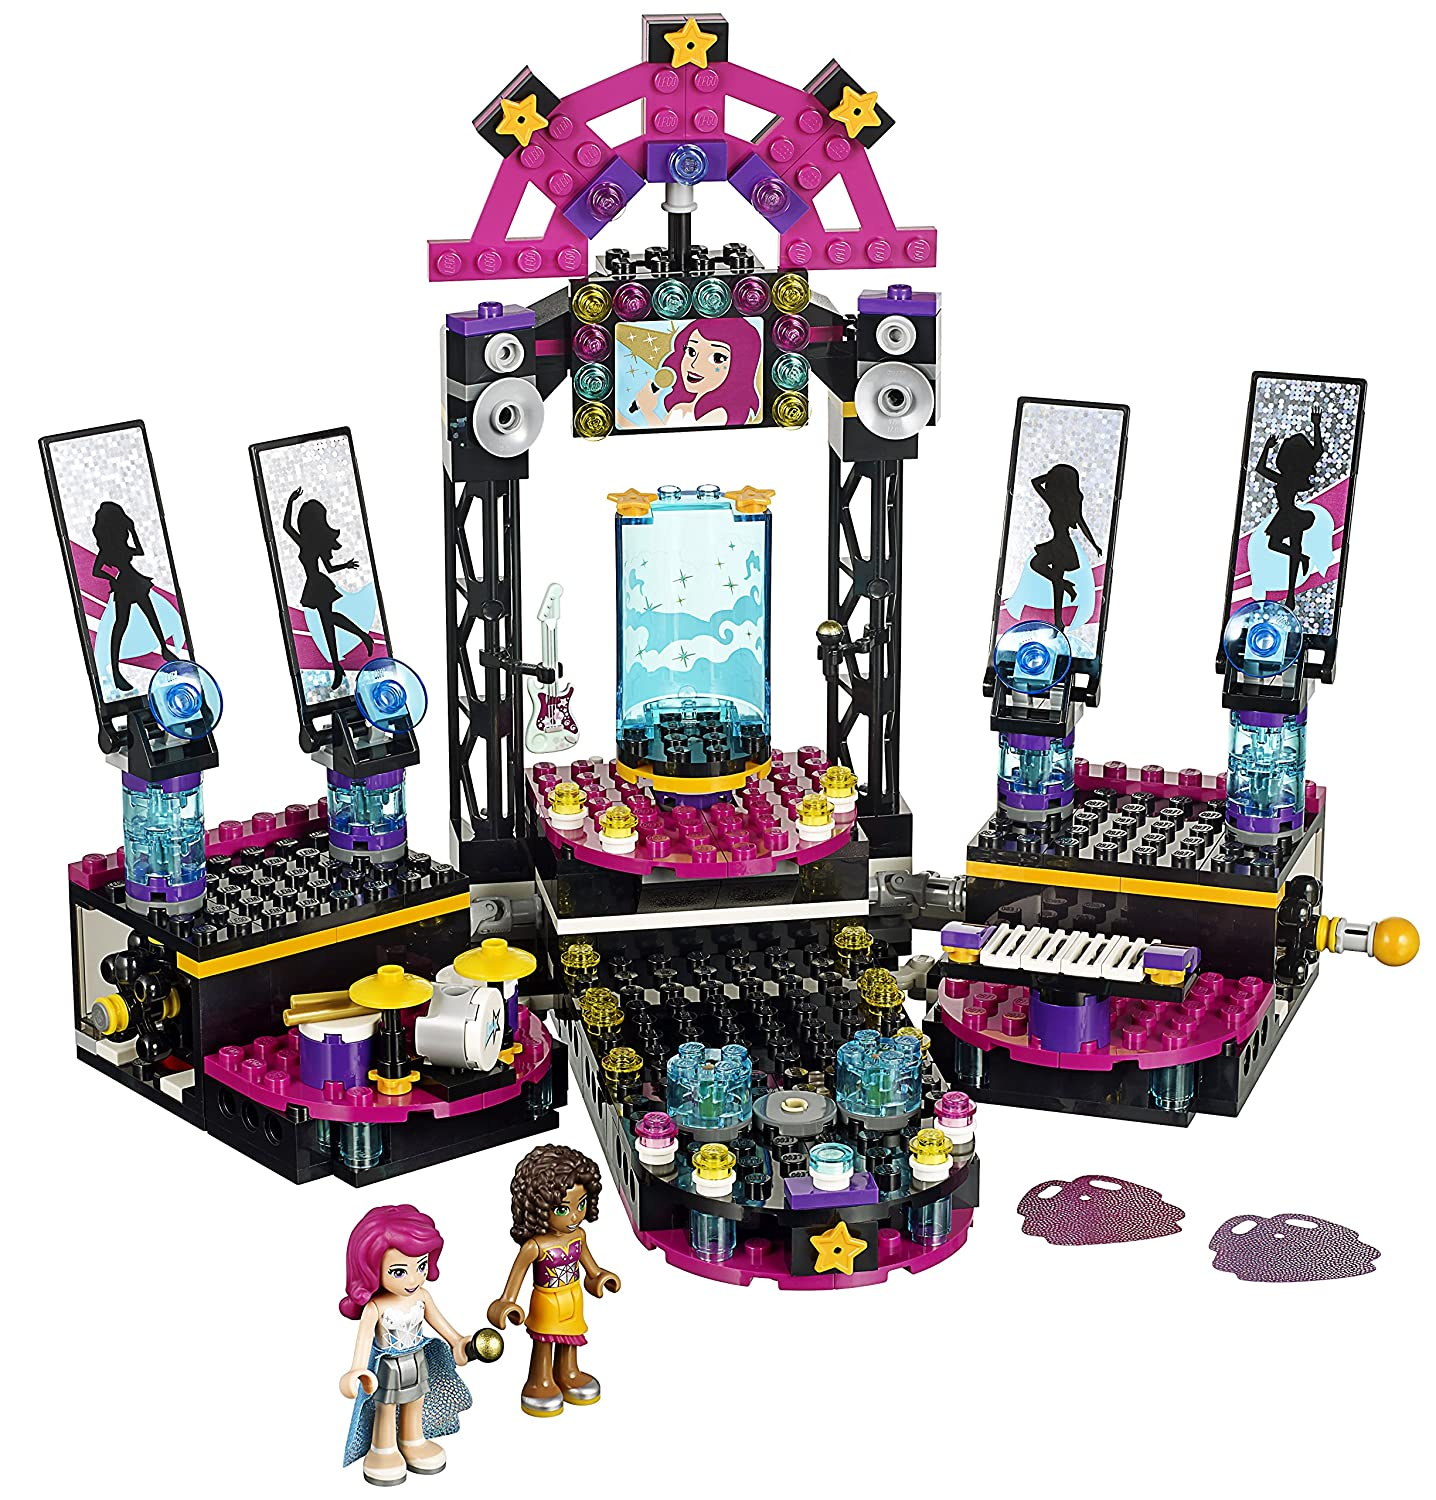 LEGO Friends Pop Star Show Stage 41105 Review